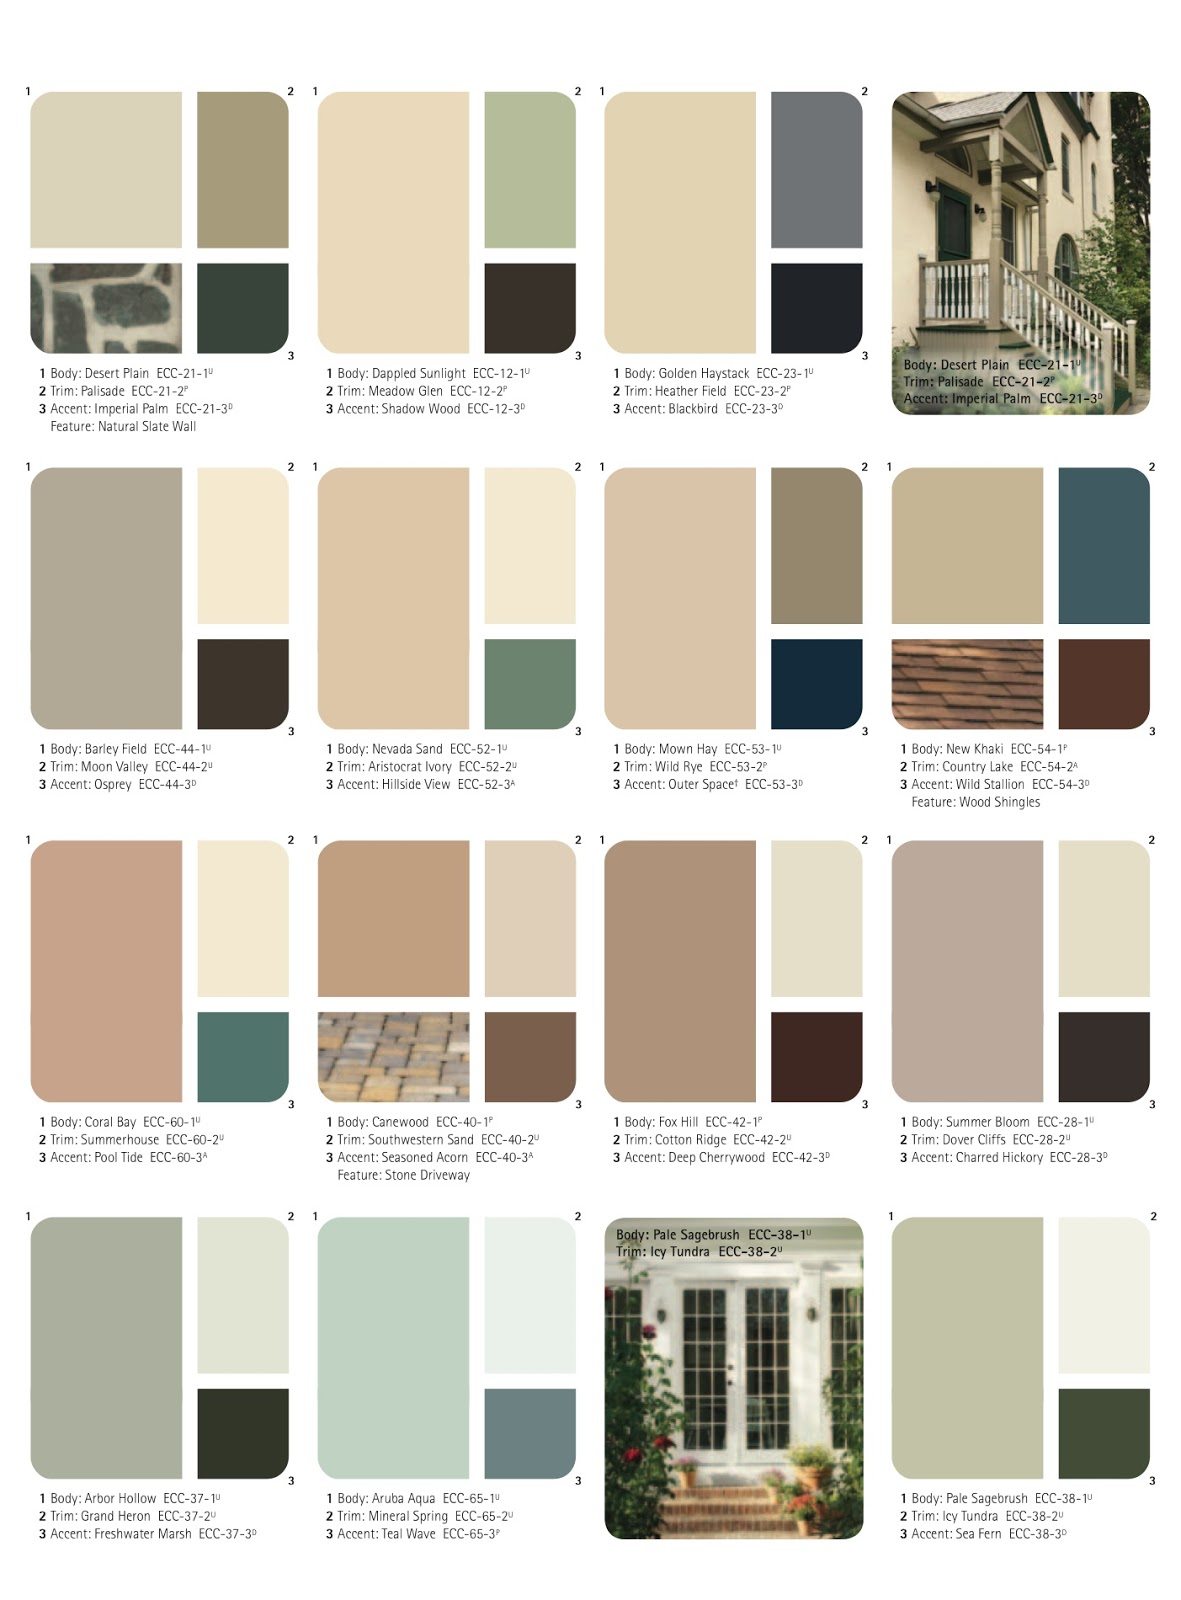 Home depot house paint home painting ideas for Exterior wall paint colors house